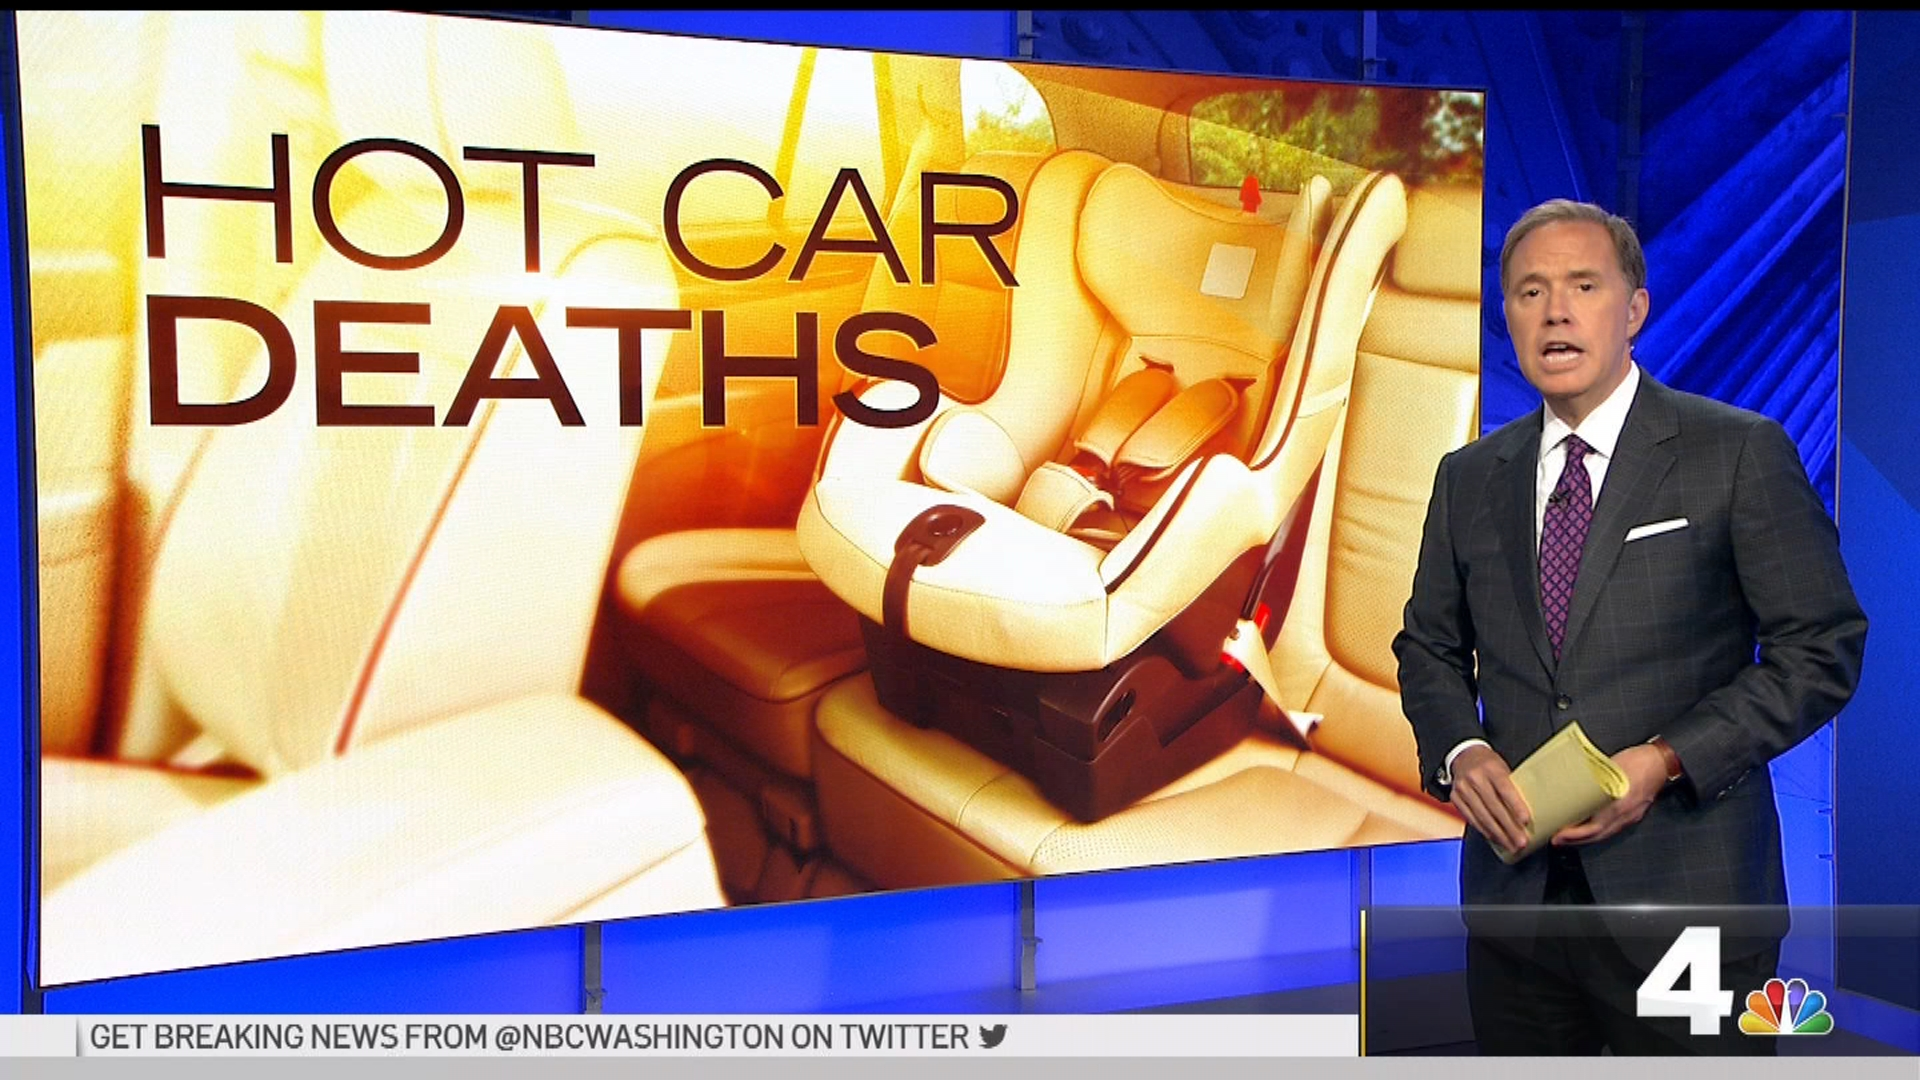 Groups Say Automakers' Plan to Prevent Hot Car Deaths Falls